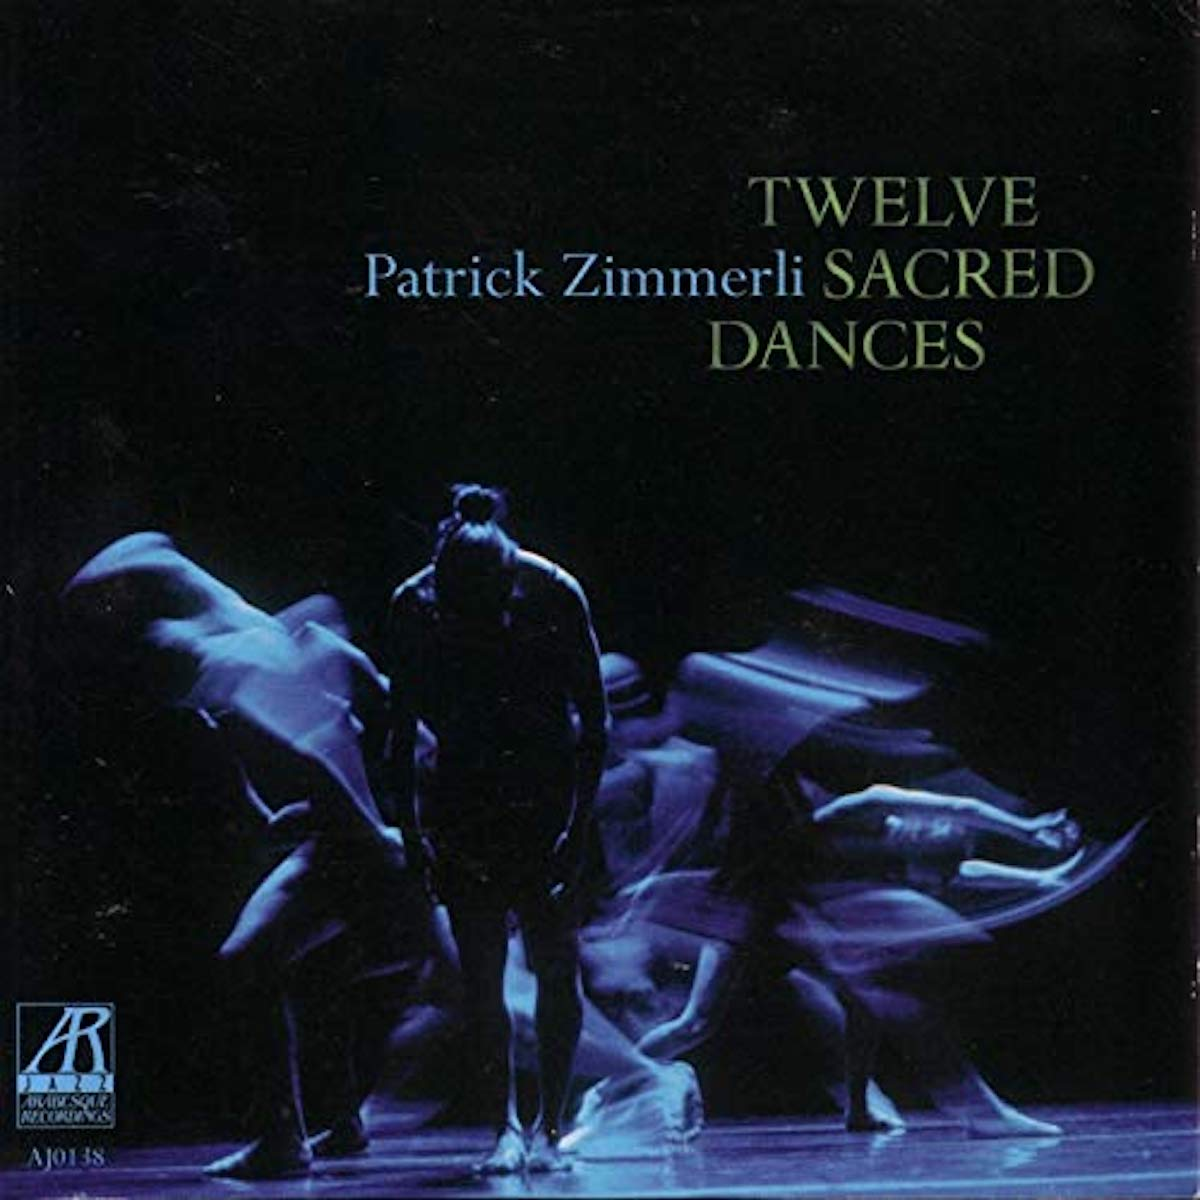 AJ0138  | Twelve Sacred Dances |  Patrick Zimmerli